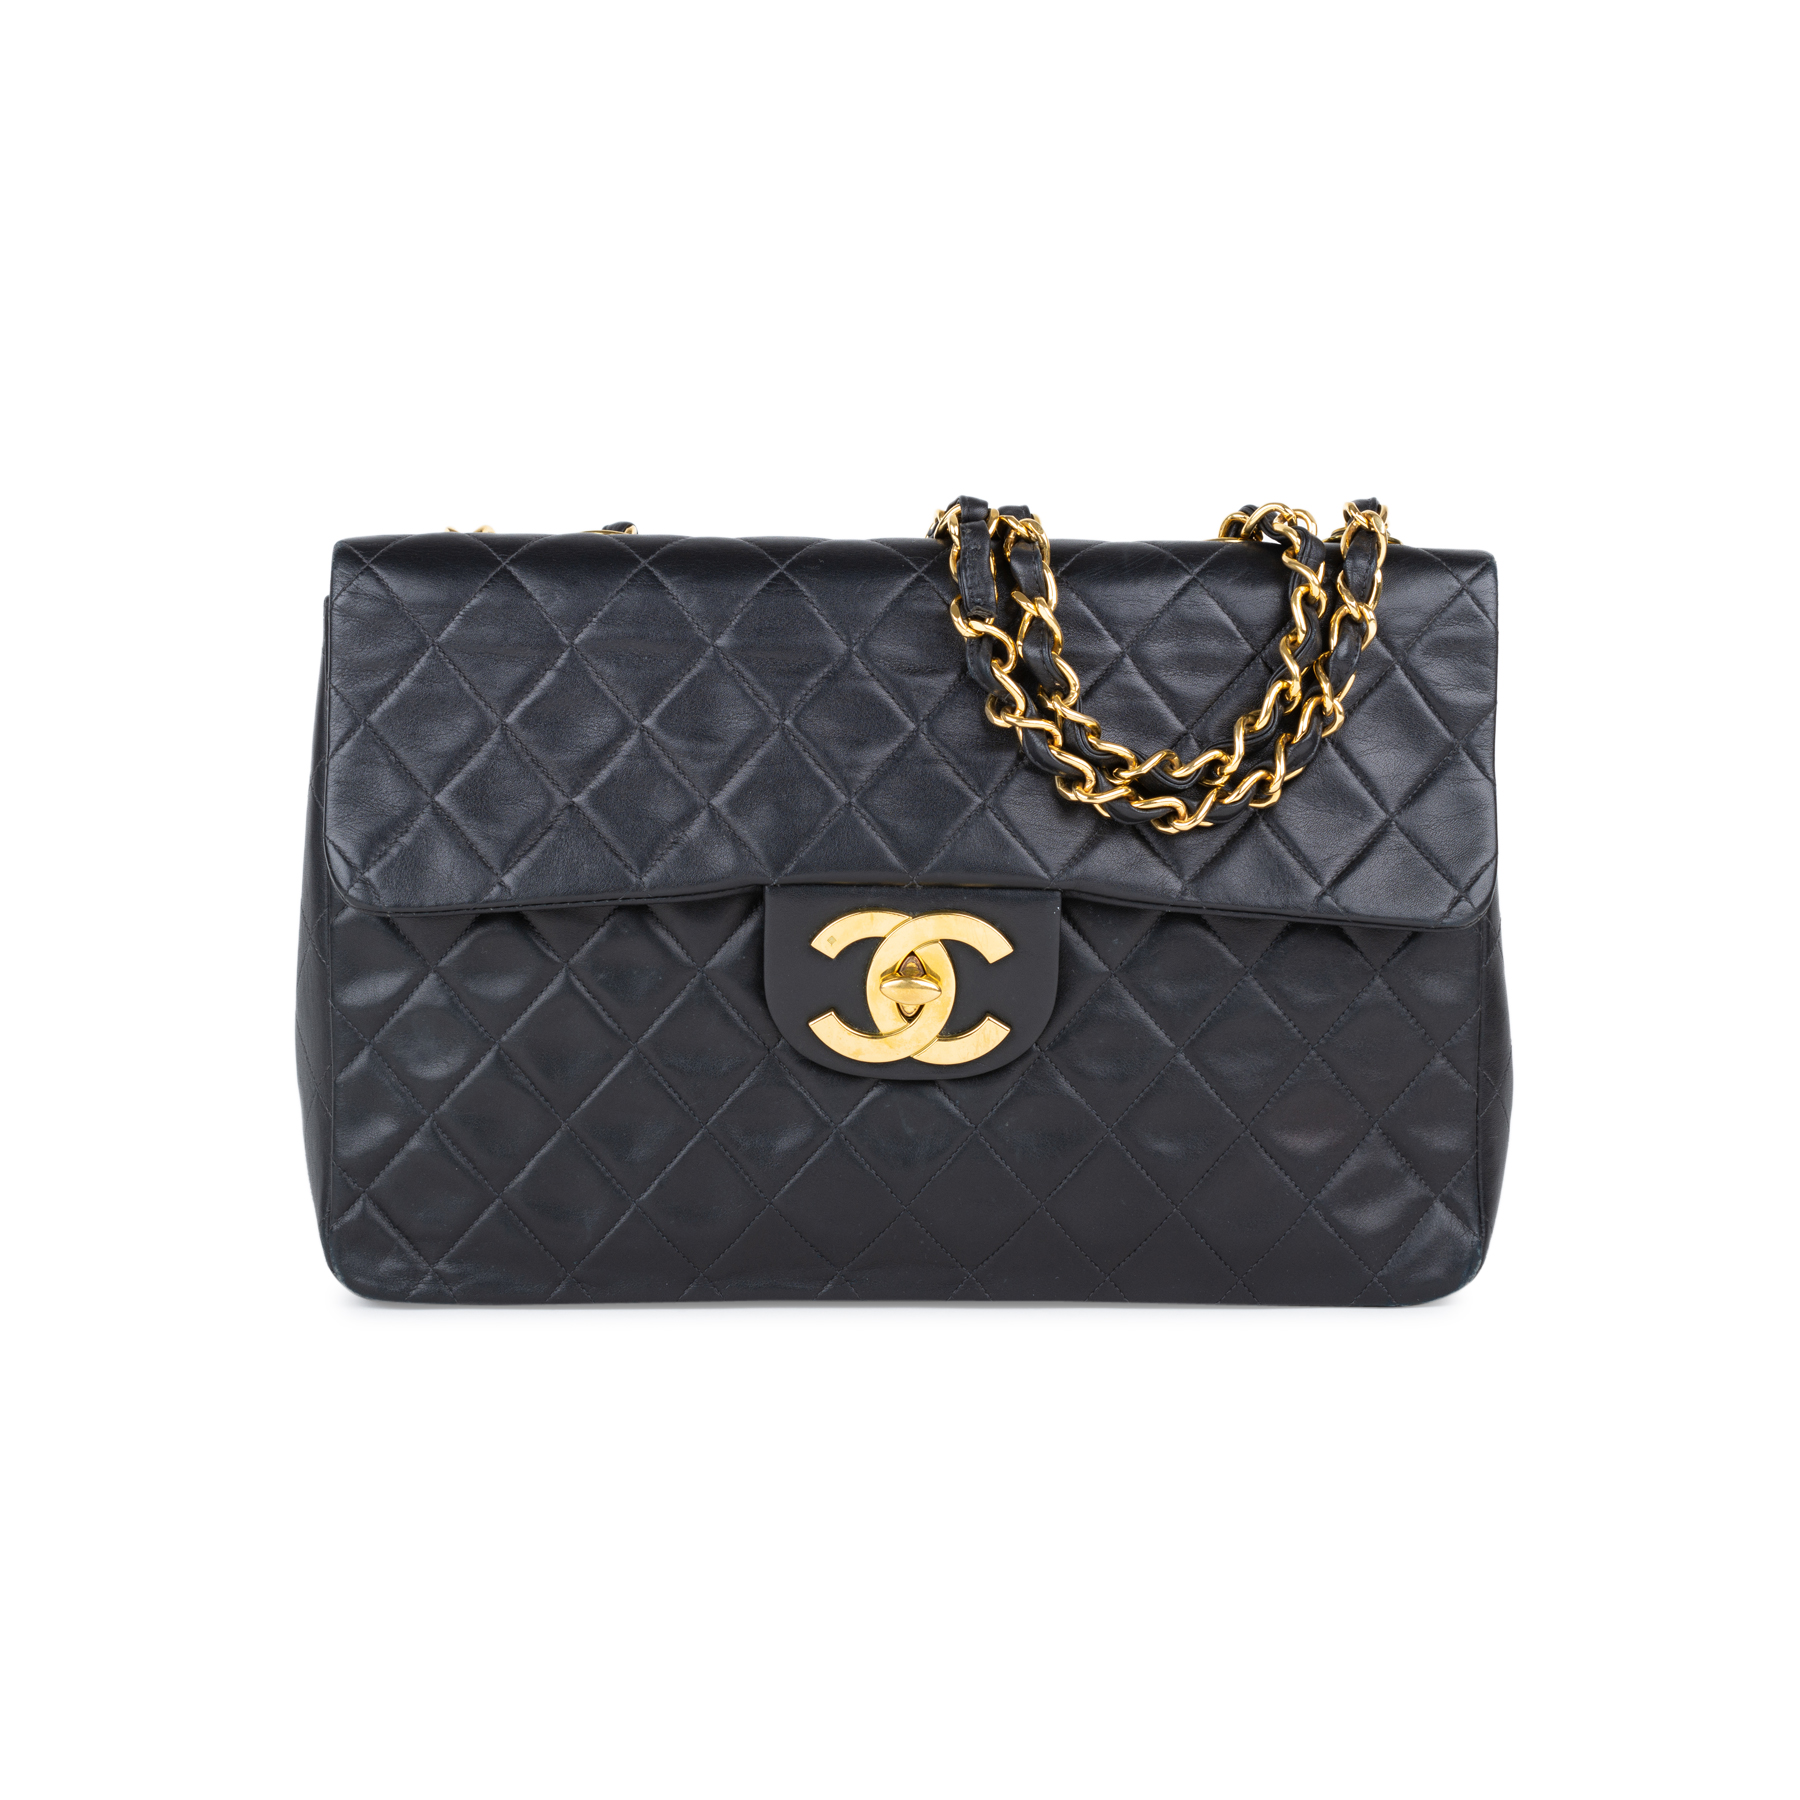 95bebd27828c Authentic Second Hand Chanel Classic Maxi Flap Bag (PSS-550-00004 ...